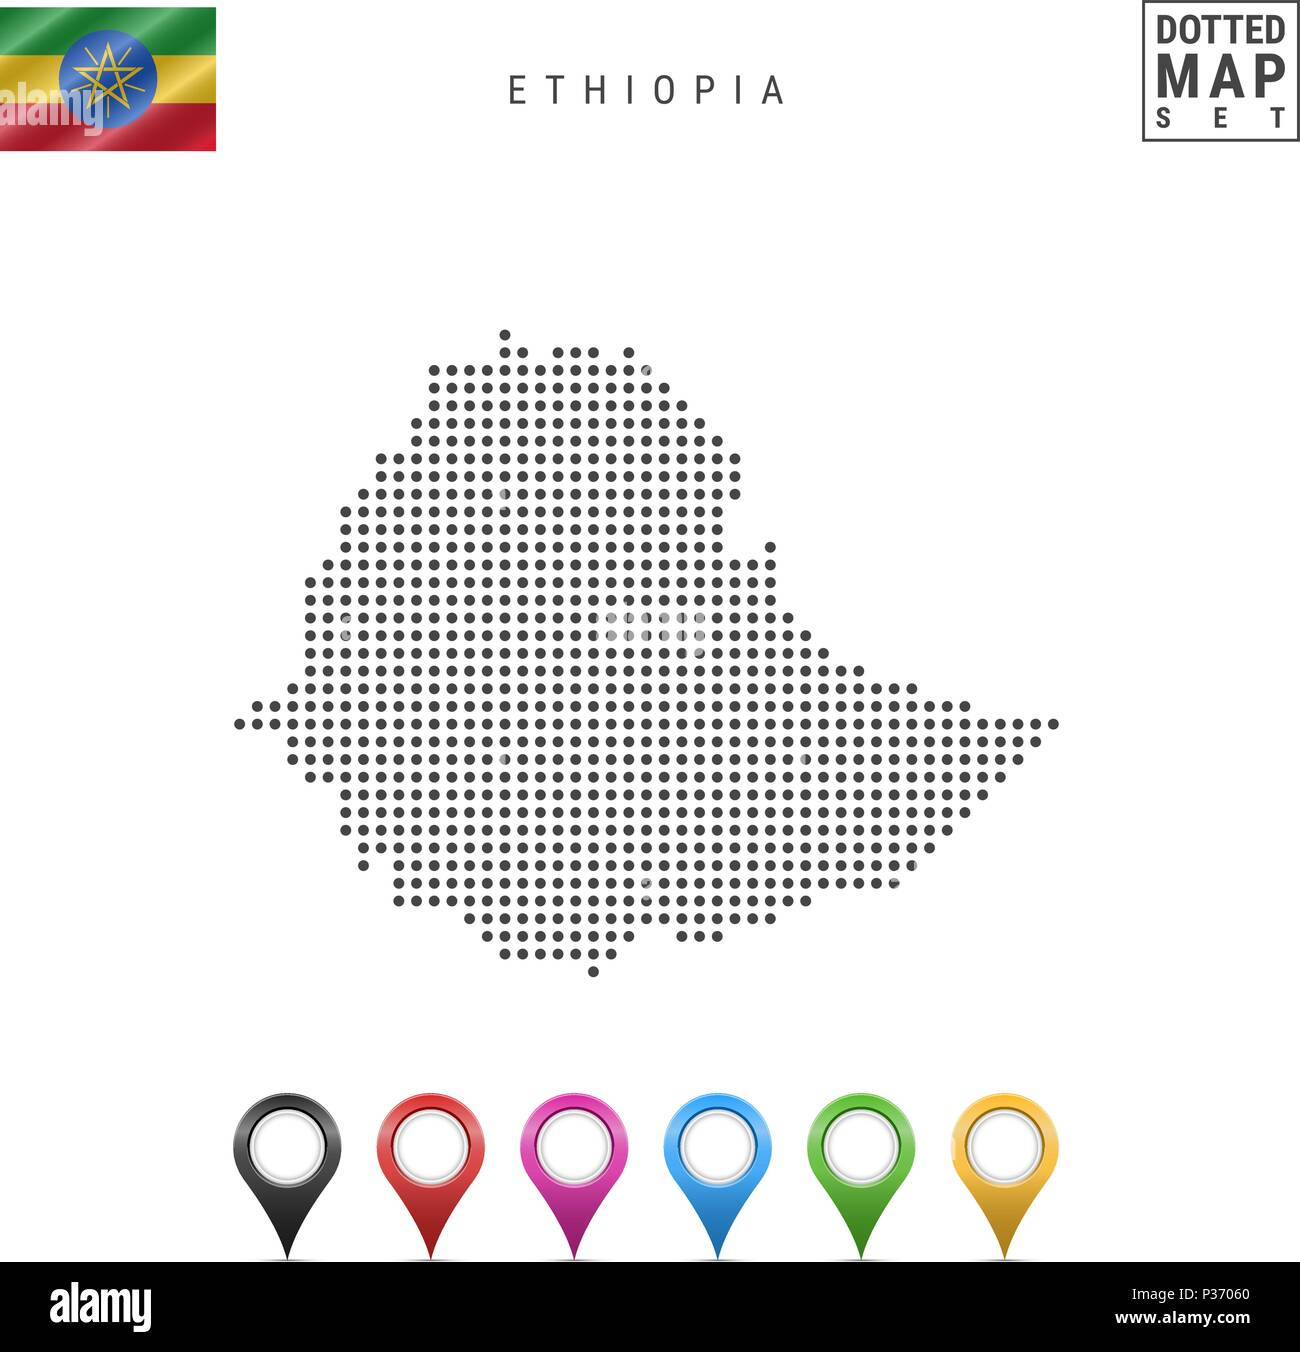 Vector Dotted Map of Ethiopia. Simple Silhouette of Ethiopia. National Flag of Ethiopia. Set of Multicolored Map Markers - Stock Vector